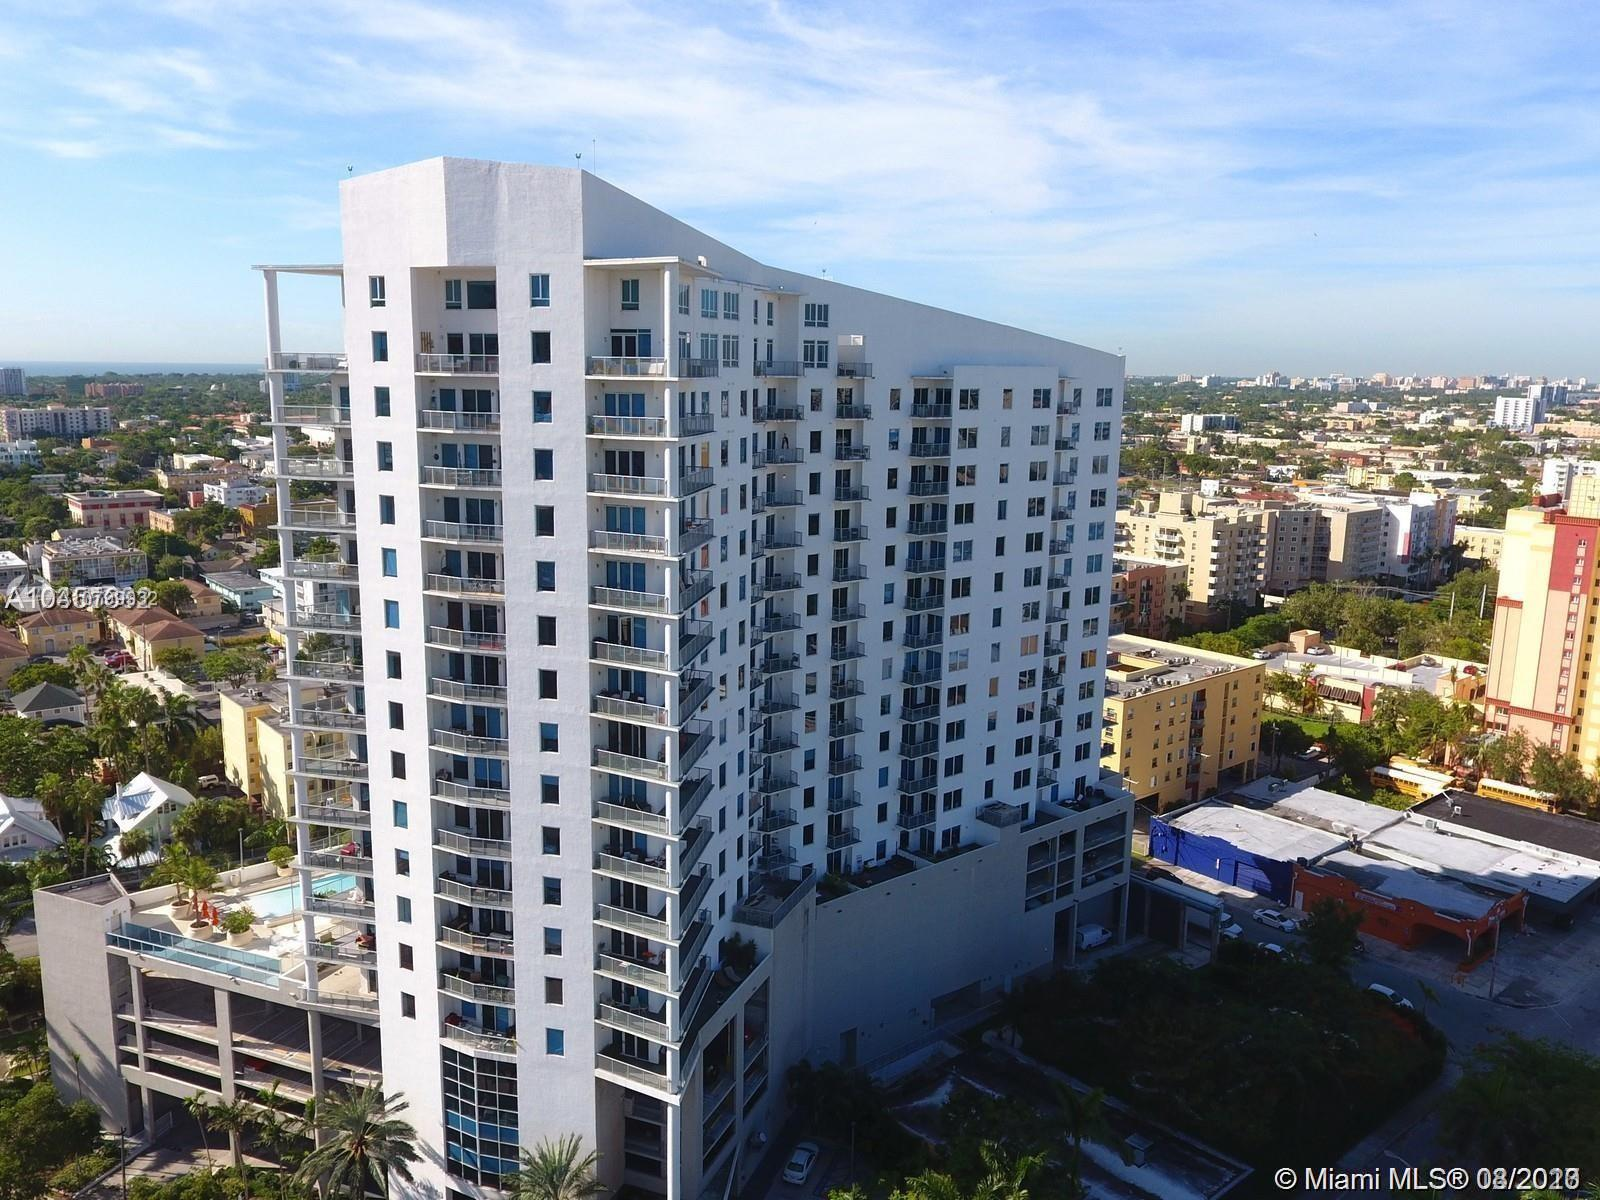 10 SW South River Dr # 1202, Miami, Florida 33130, 2 Bedrooms Bedrooms, ,1 BathroomBathrooms,Residential,For Sale,10 SW South River Dr # 1202,A10799932